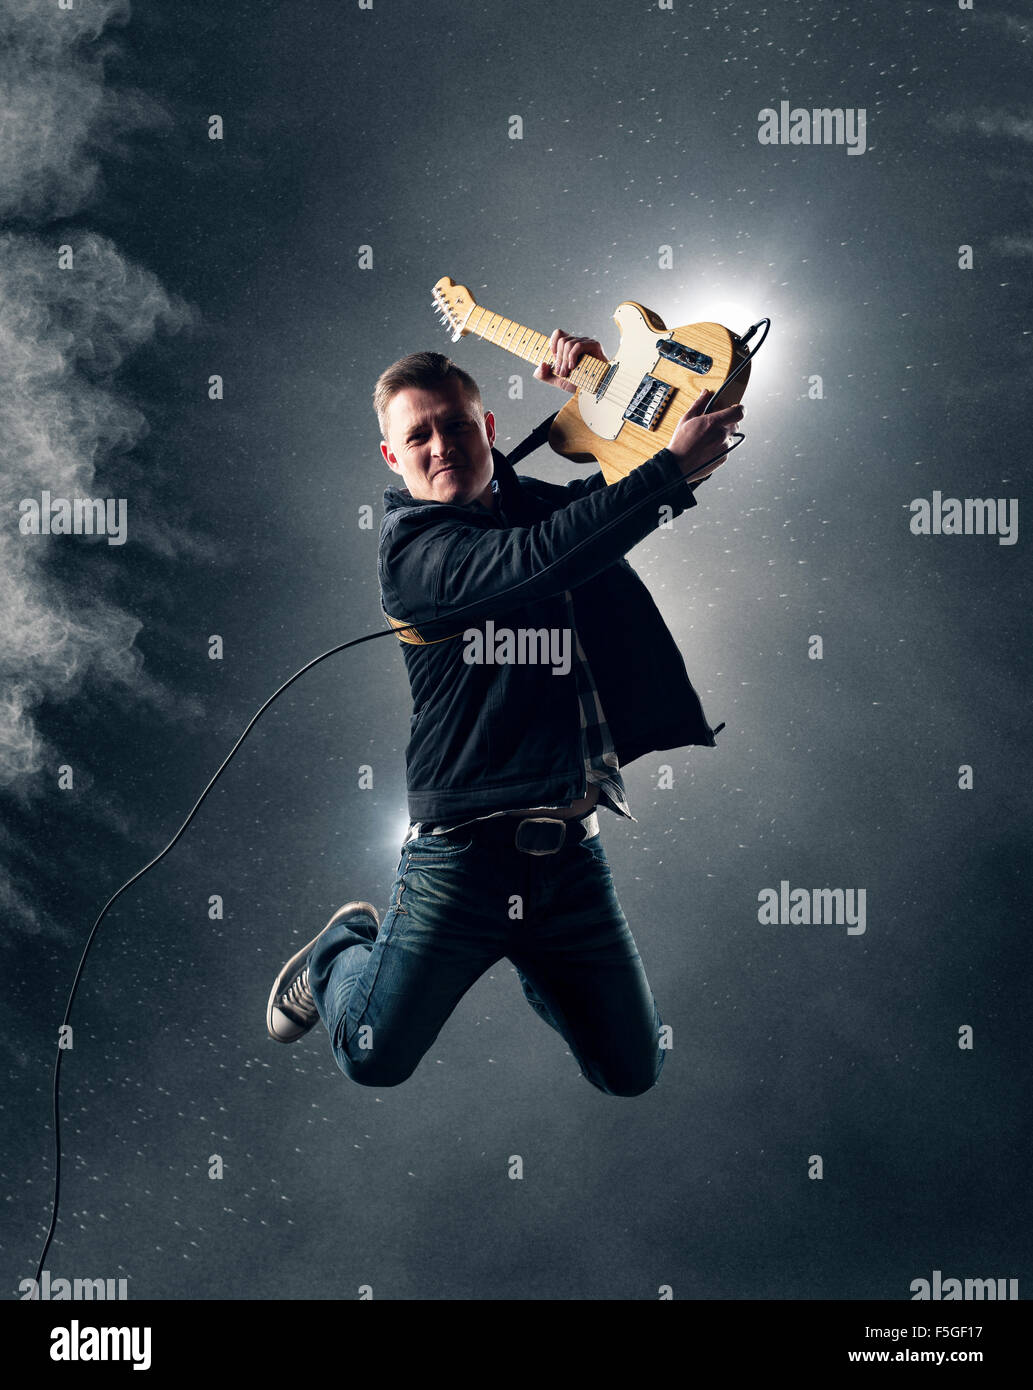 Rock and Roll Guitarist jumping with electric guitar with smoke and powder in background - Stock Image